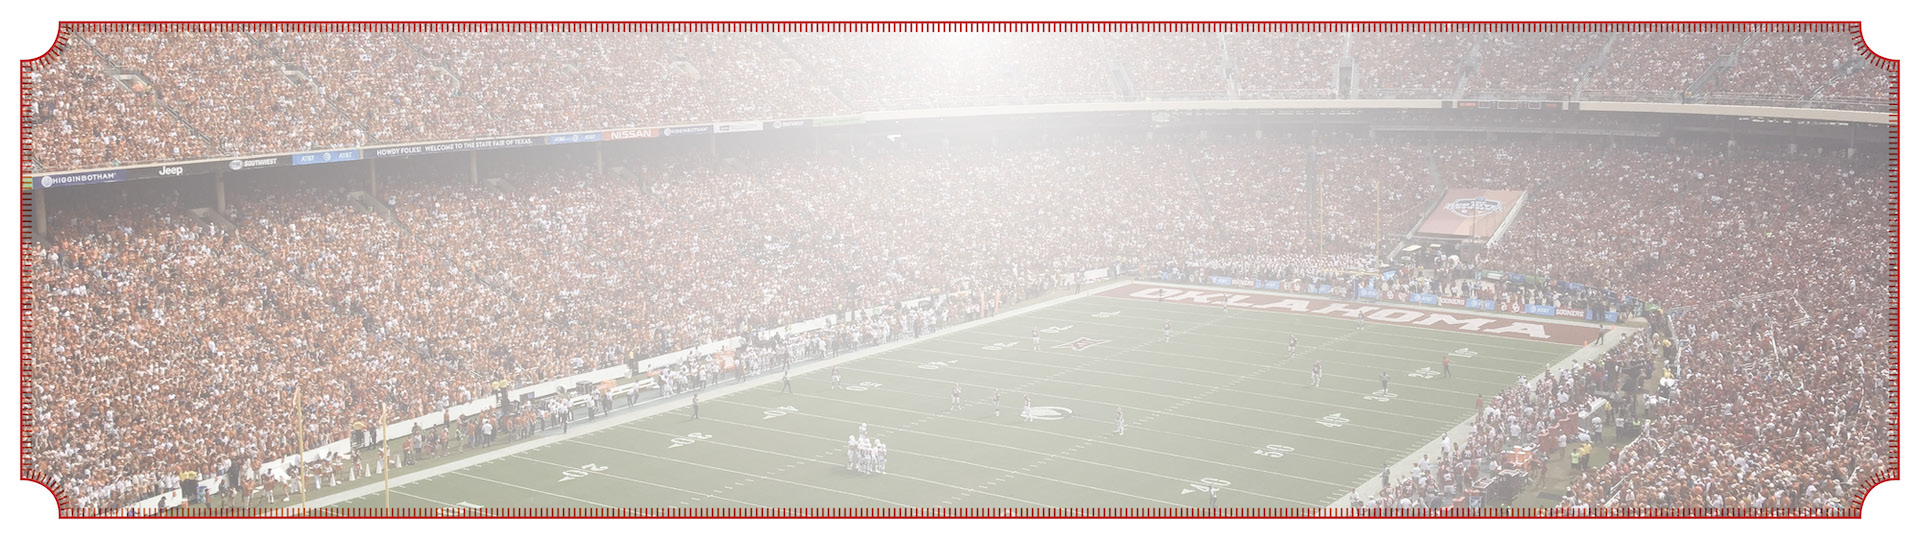 football stadium game background